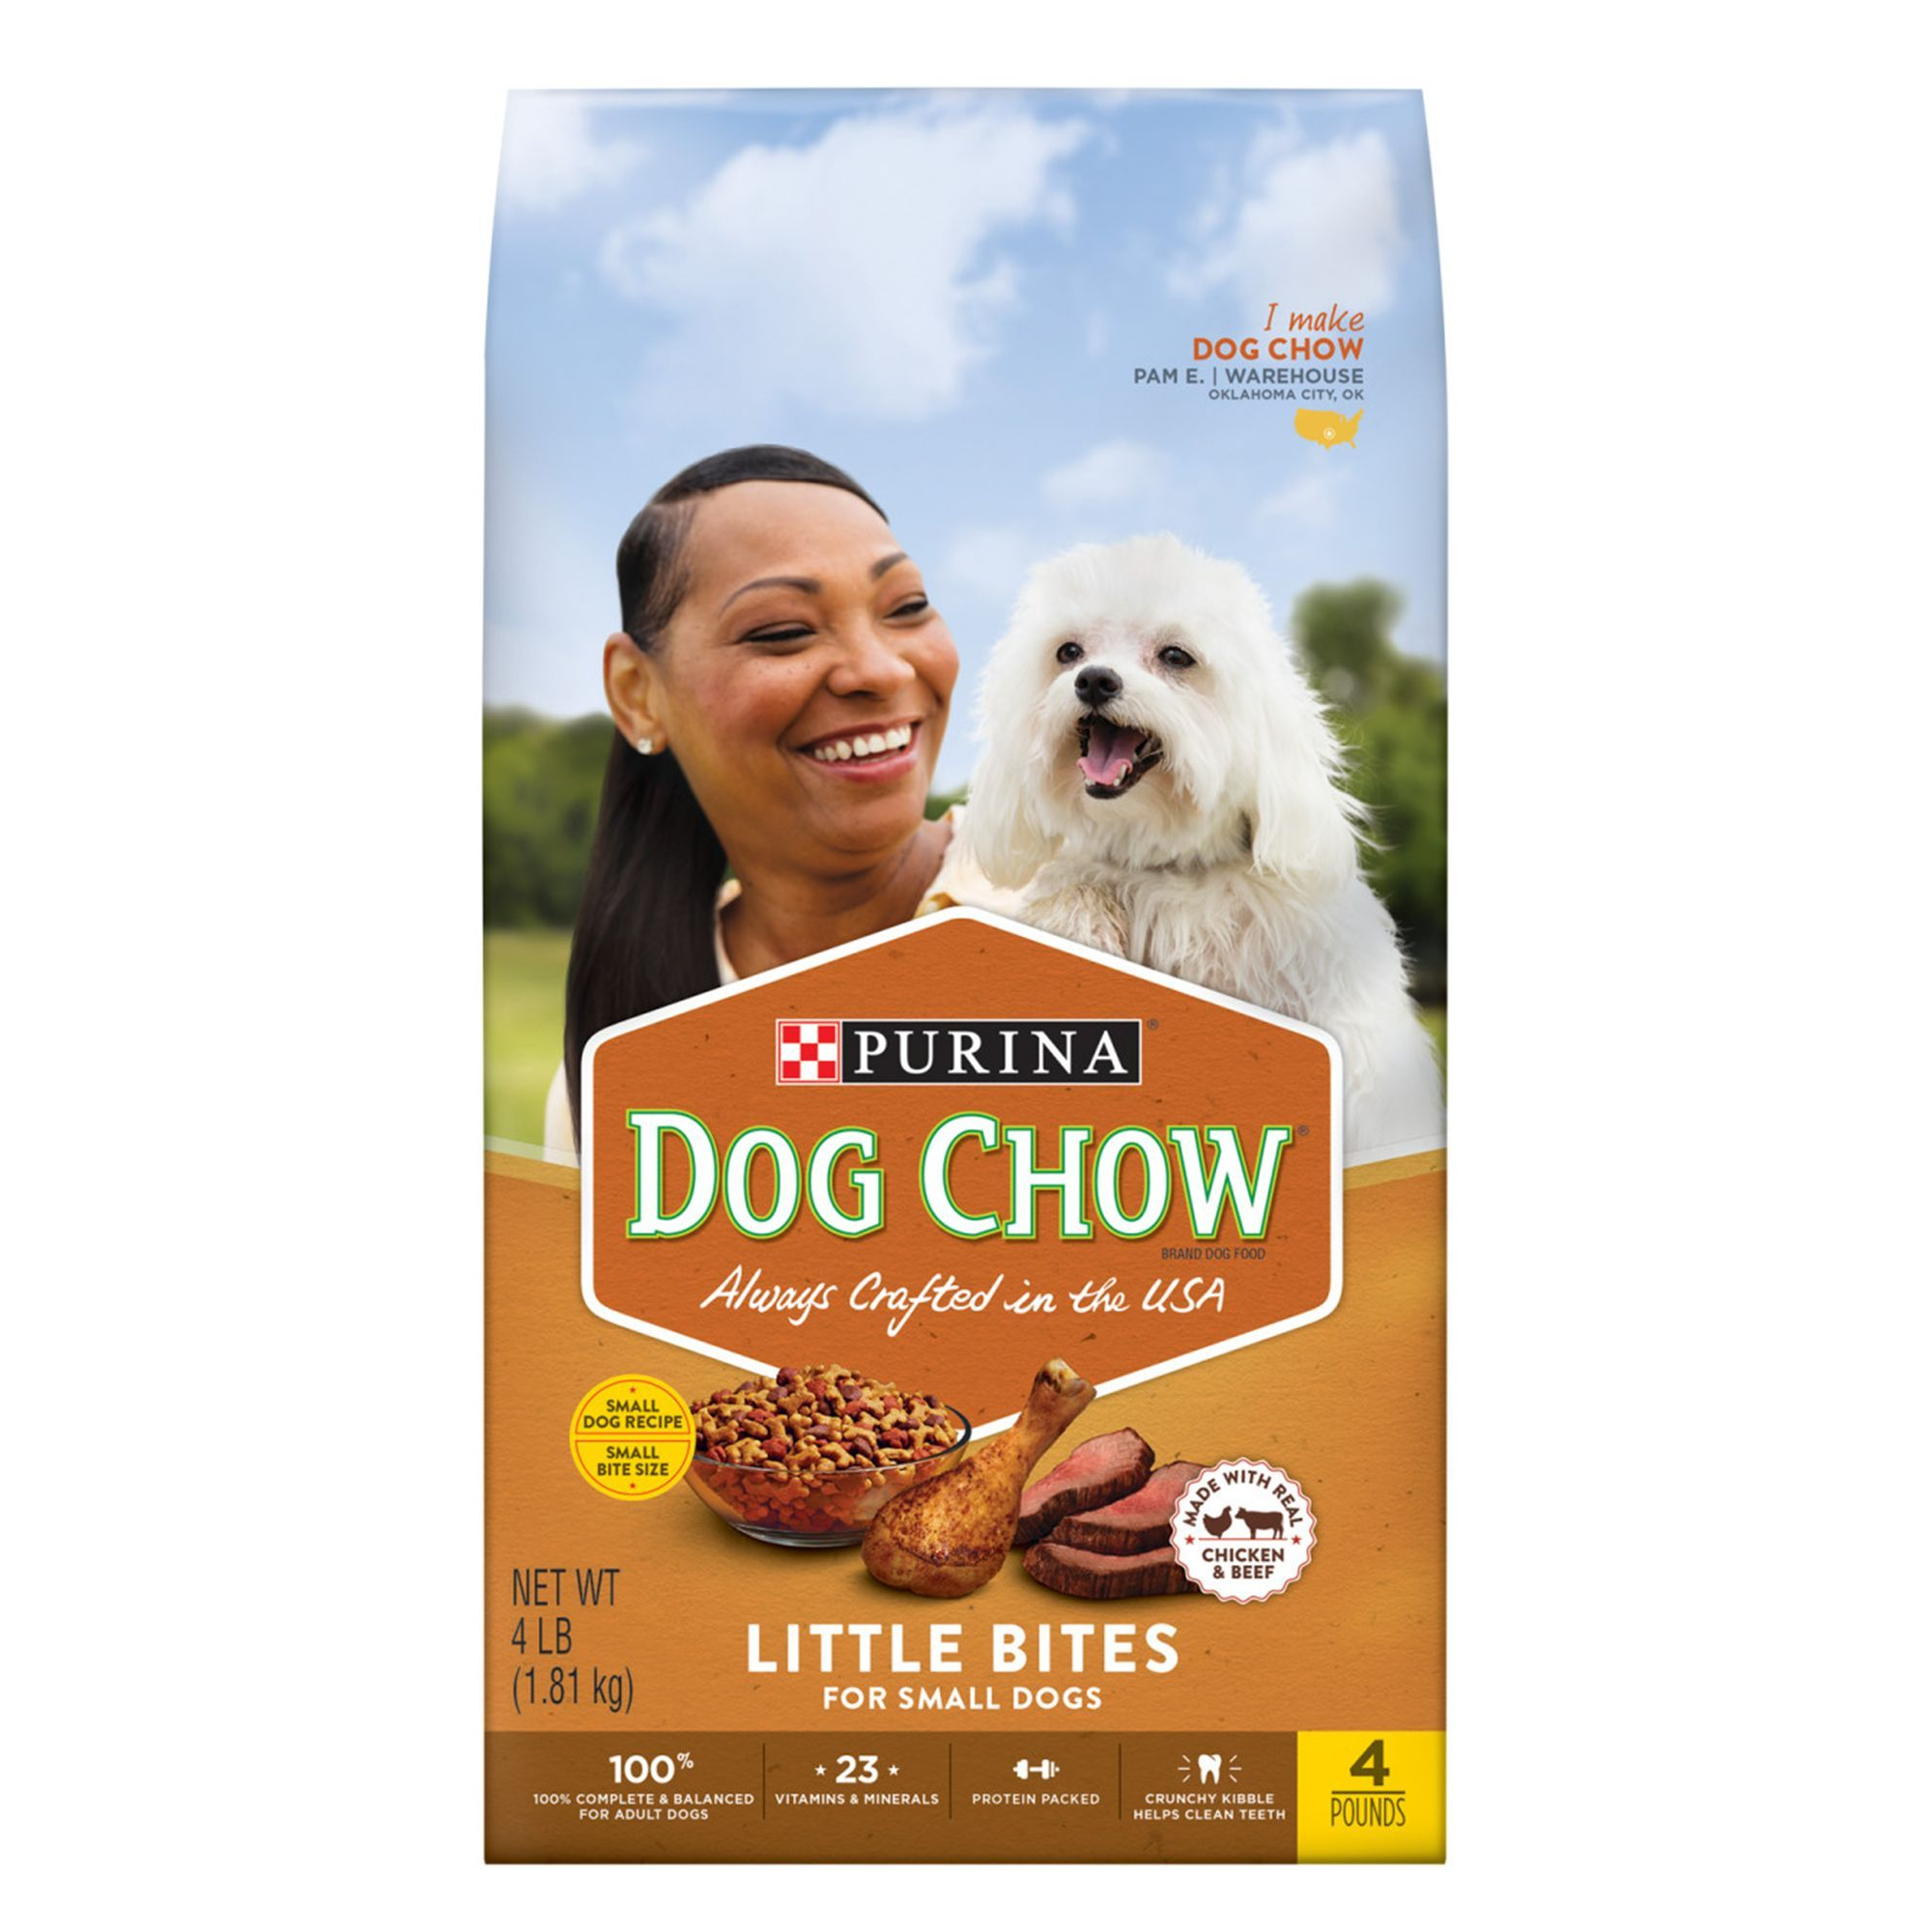 Purina Dog Chow Little Bites Dog Food Purina Dog Chow Dry Dog